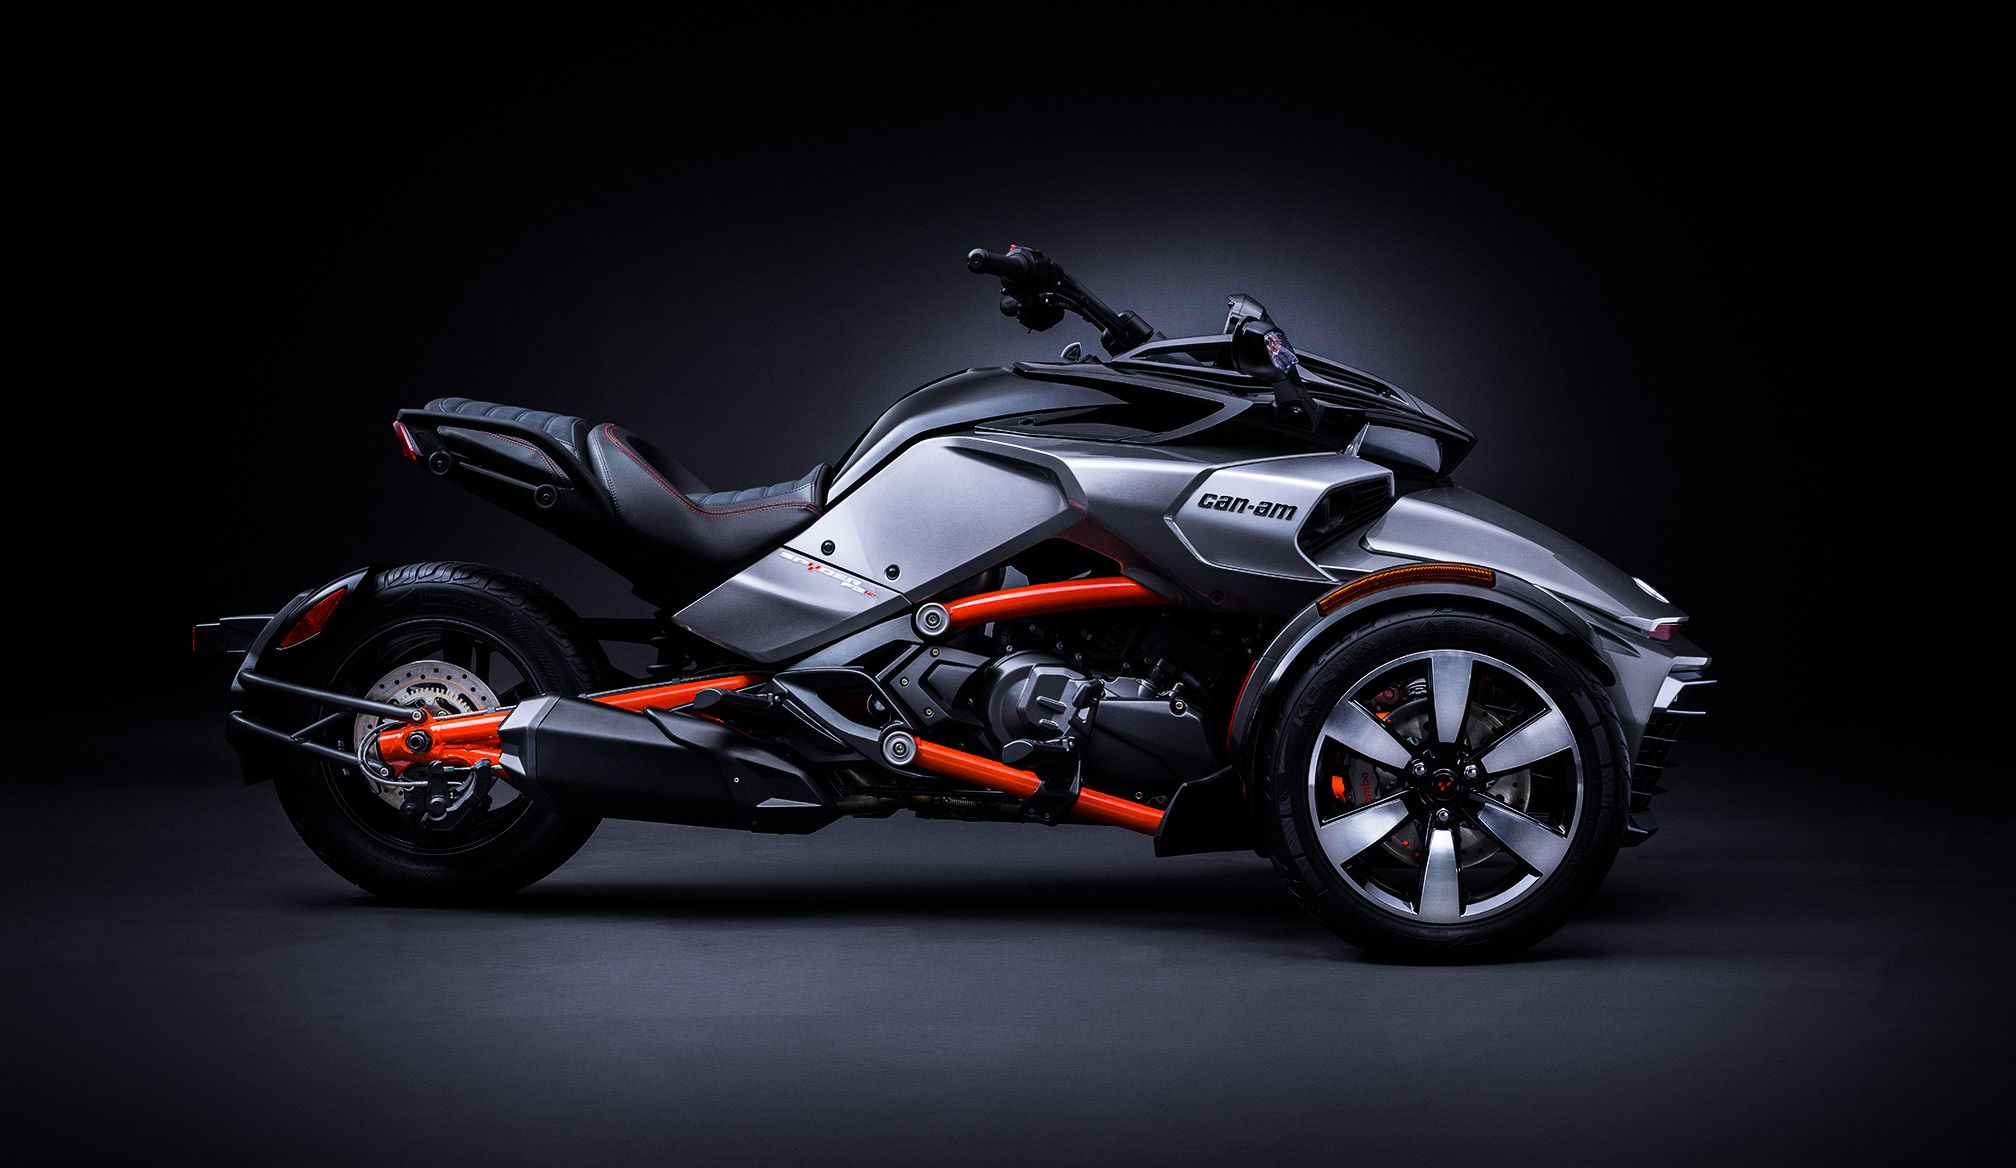 2017 can am spyder f3 s sport cruising from 21 249